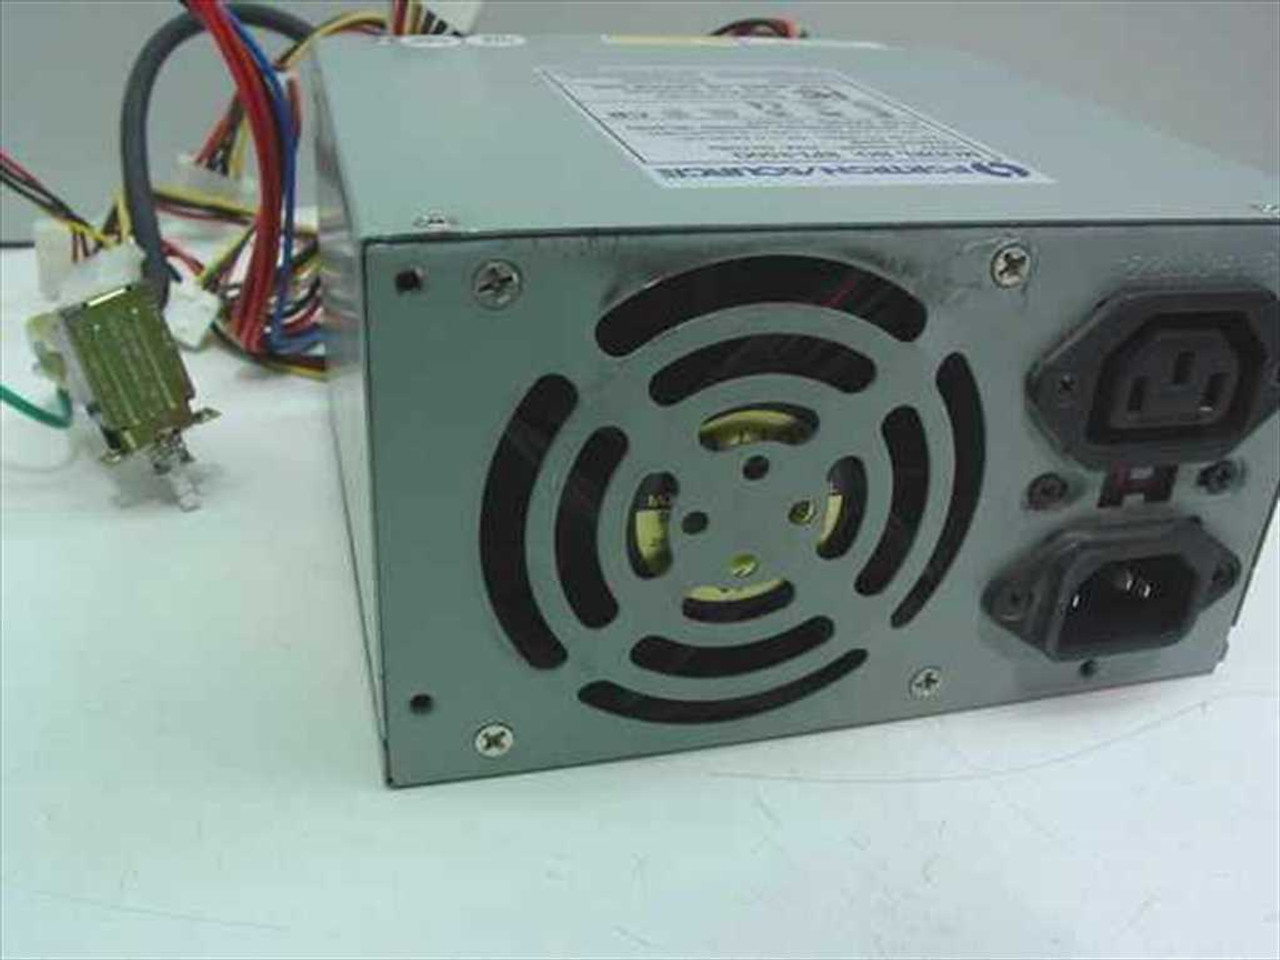 Fortron/Source SPI-250G 250W ATX Power Supply   RecycledGoods.com